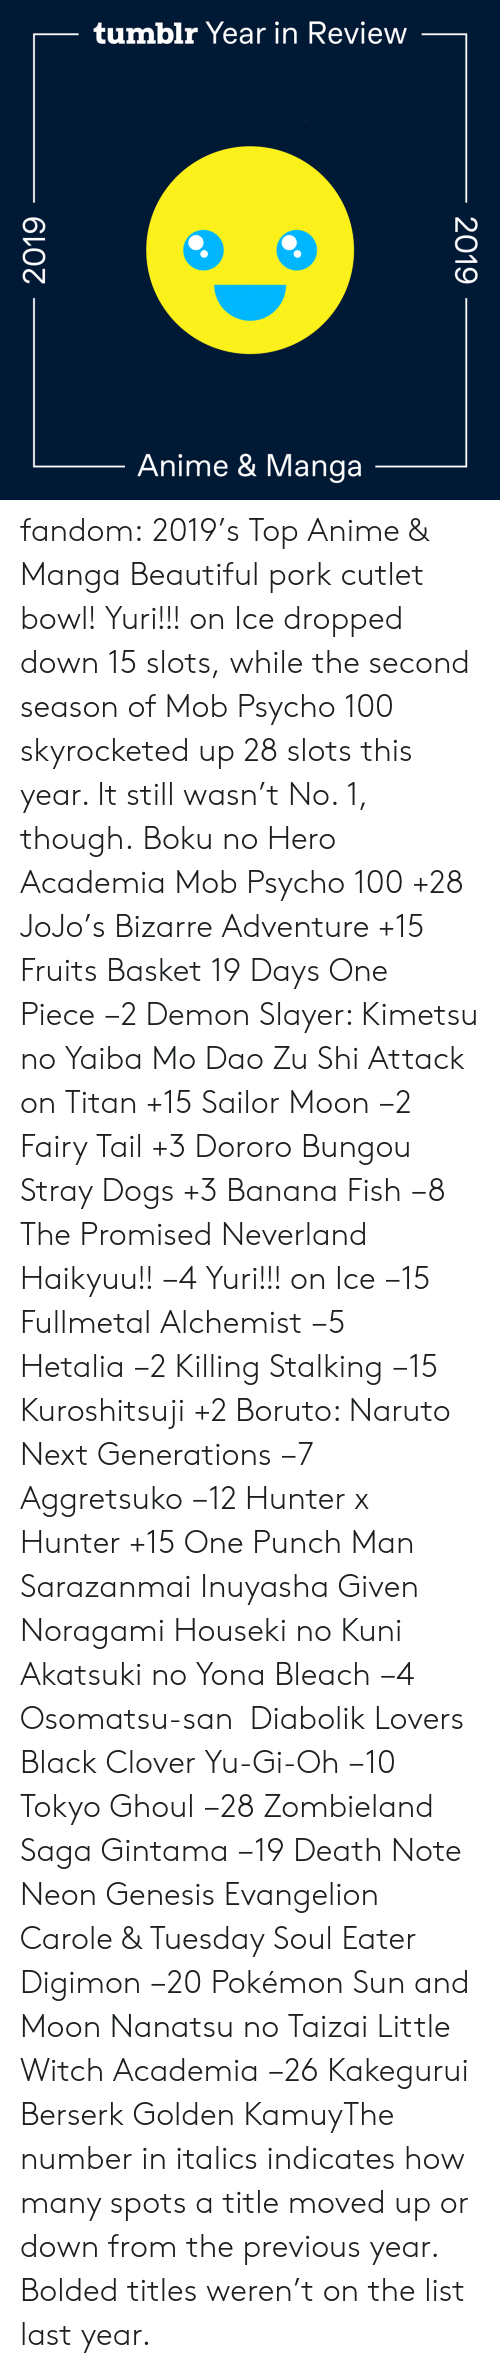 Carole: tumblr Year in Review  Anime & Manga  2019  2019 fandom:  2019's Top Anime & Manga  Beautiful pork cutlet bowl! Yuri!!! on Ice dropped down 15 slots, while the second season of Mob Psycho 100 skyrocketed up 28 slots this year. It still wasn't No. 1, though.  Boku no Hero Academia  Mob Psycho 100 +28  JoJo's Bizarre Adventure +15  Fruits Basket  19 Days  One Piece −2  Demon Slayer: Kimetsu no Yaiba  Mo Dao Zu Shi  Attack on Titan +15  Sailor Moon −2  Fairy Tail +3  Dororo  Bungou Stray Dogs +3  Banana Fish −8  The Promised Neverland  Haikyuu!! −4  Yuri!!! on Ice −15  Fullmetal Alchemist −5  Hetalia −2  Killing Stalking −15  Kuroshitsuji +2  Boruto: Naruto Next Generations −7  Aggretsuko −12  Hunter x Hunter +15  One Punch Man  Sarazanmai  Inuyasha  Given  Noragami  Houseki no Kuni  Akatsuki no Yona  Bleach −4  Osomatsu-san   Diabolik Lovers  Black Clover  Yu-Gi-Oh −10  Tokyo Ghoul −28  Zombieland Saga  Gintama −19  Death Note  Neon Genesis Evangelion  Carole & Tuesday  Soul Eater  Digimon −20  Pokémon Sun and Moon  Nanatsu no Taizai  Little Witch Academia −26  Kakegurui  Berserk Golden KamuyThe number in italics indicates how many spots a title moved up or down from the previous year. Bolded titles weren't on the list last year.